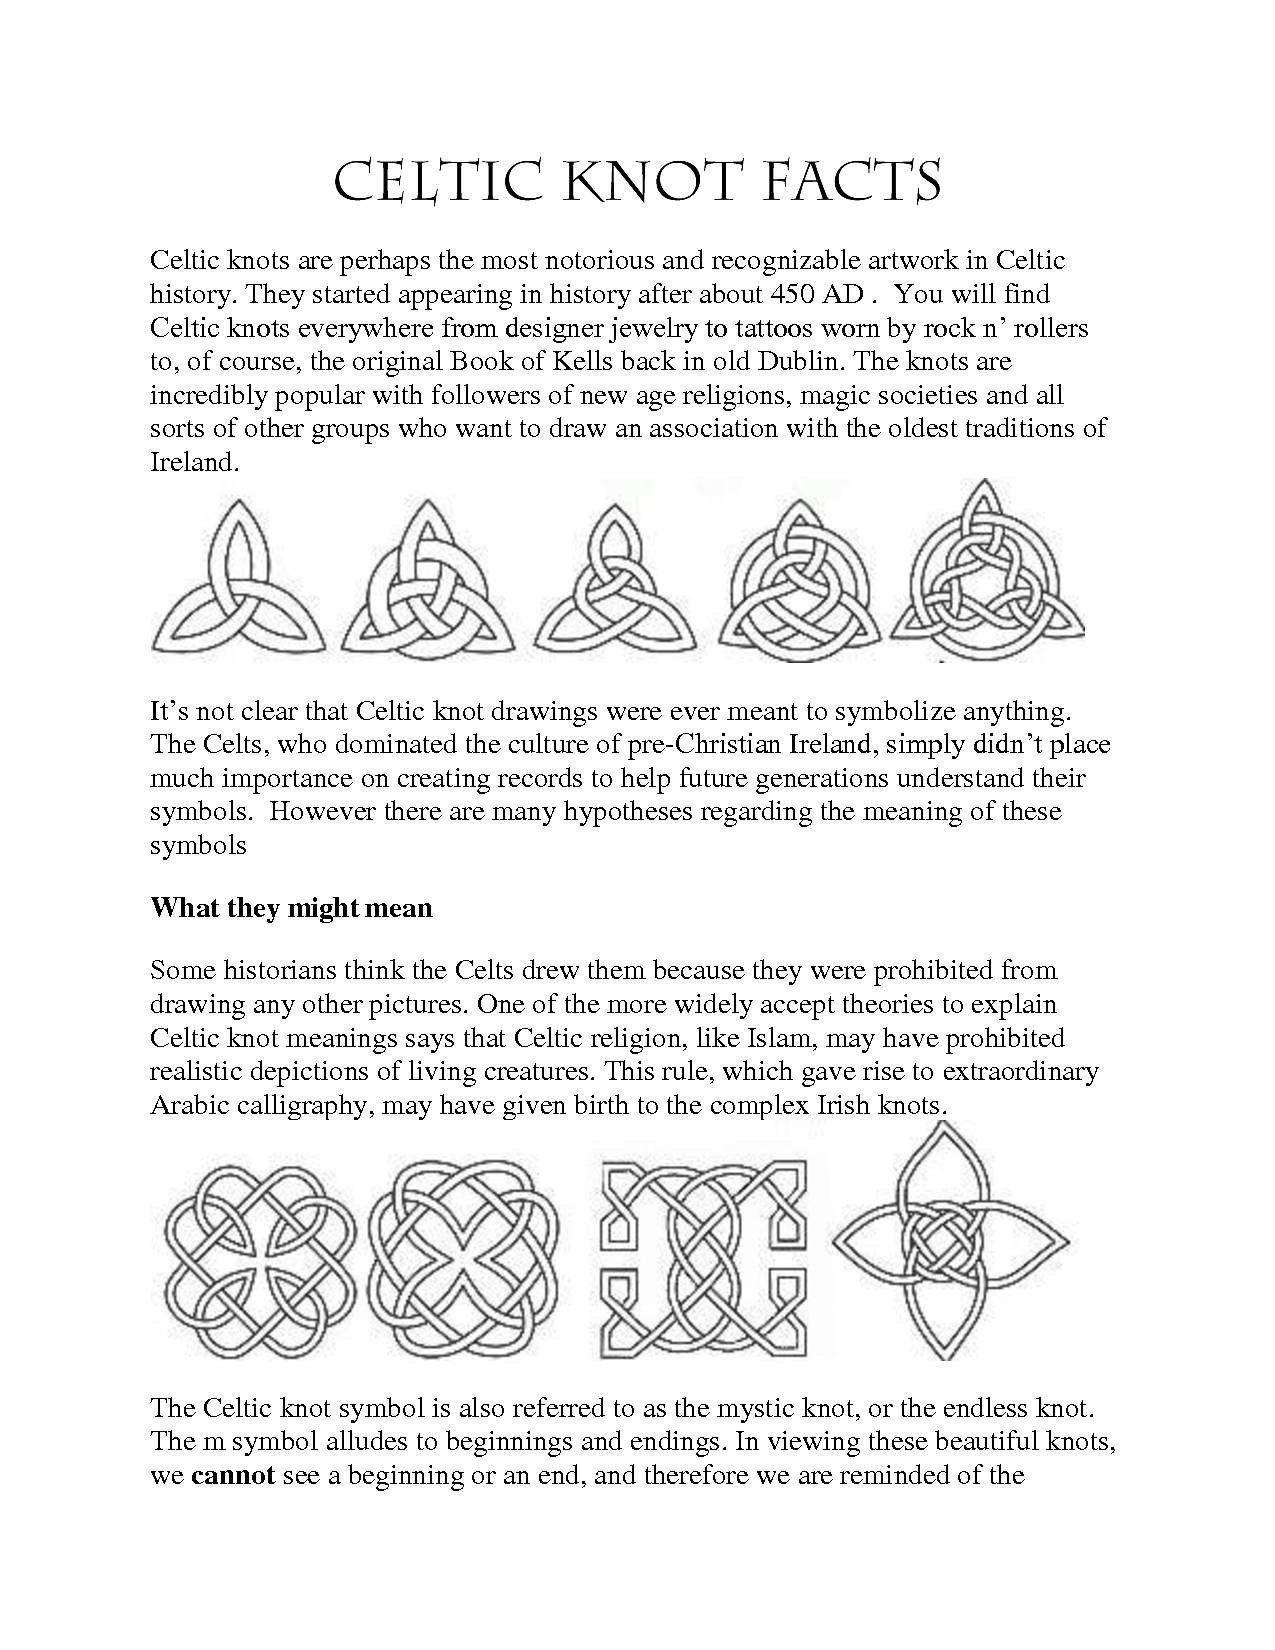 Celtic symbols and their meanings whether these irish celtic celtic symbols and their meanings whether these irish celtic symbols were originally meant to applique pinterest celtic knot meanings biocorpaavc Choice Image